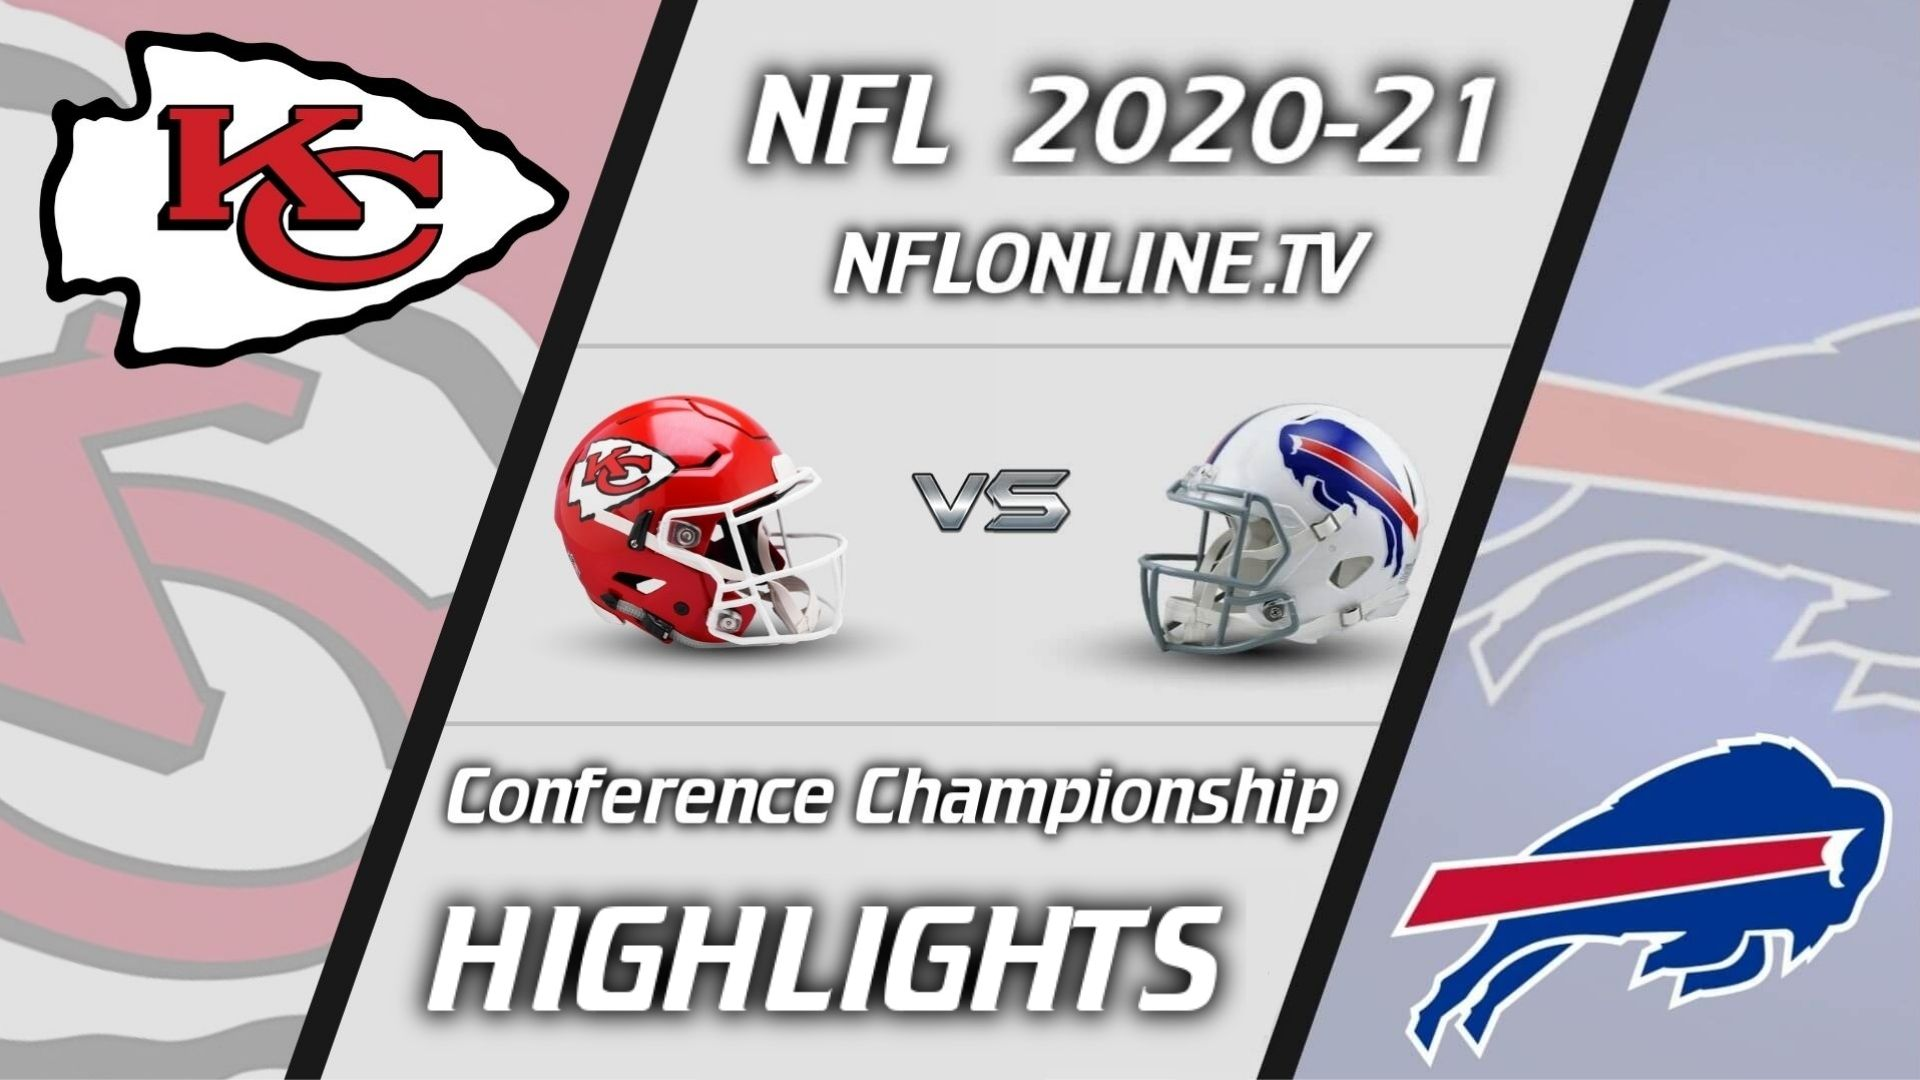 Chiefs Vs Bills Highlights 2021 NFL Conference Championship